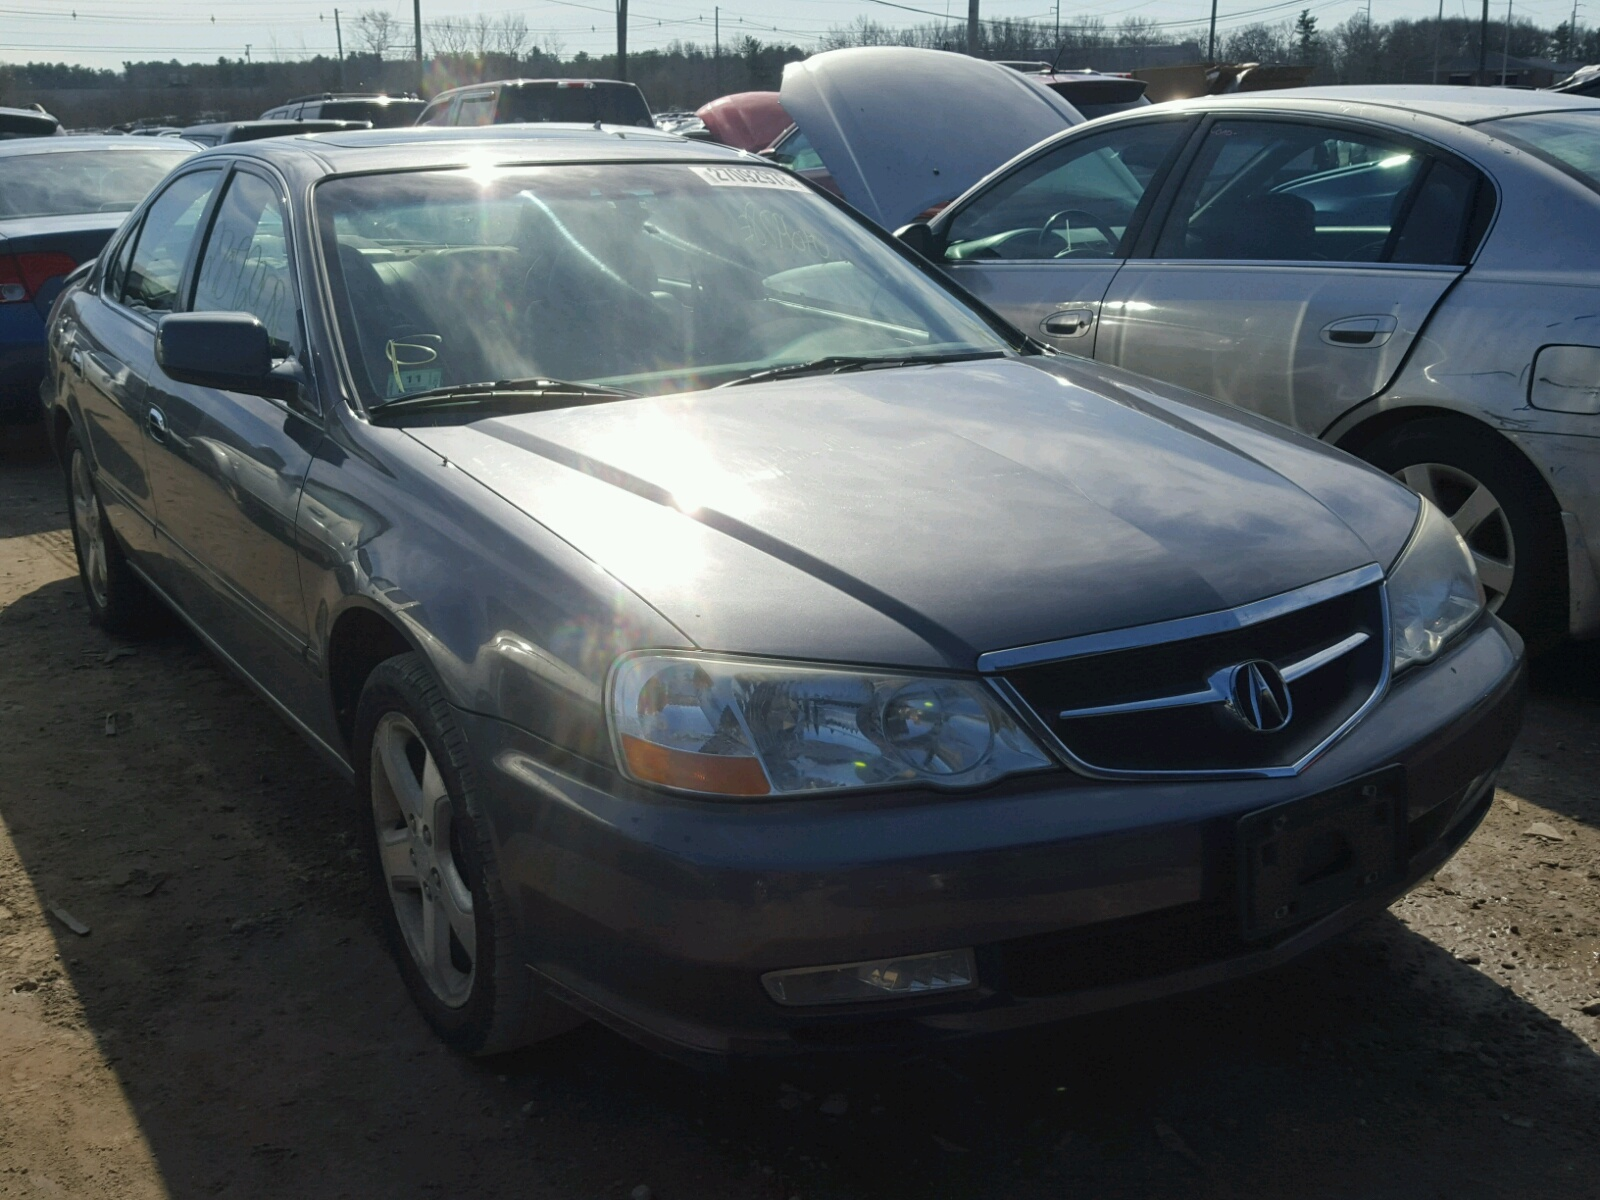 UUAA GRAY ACURA TL TYPE On Sale In MA NORTH - 2003 acura tl for sale